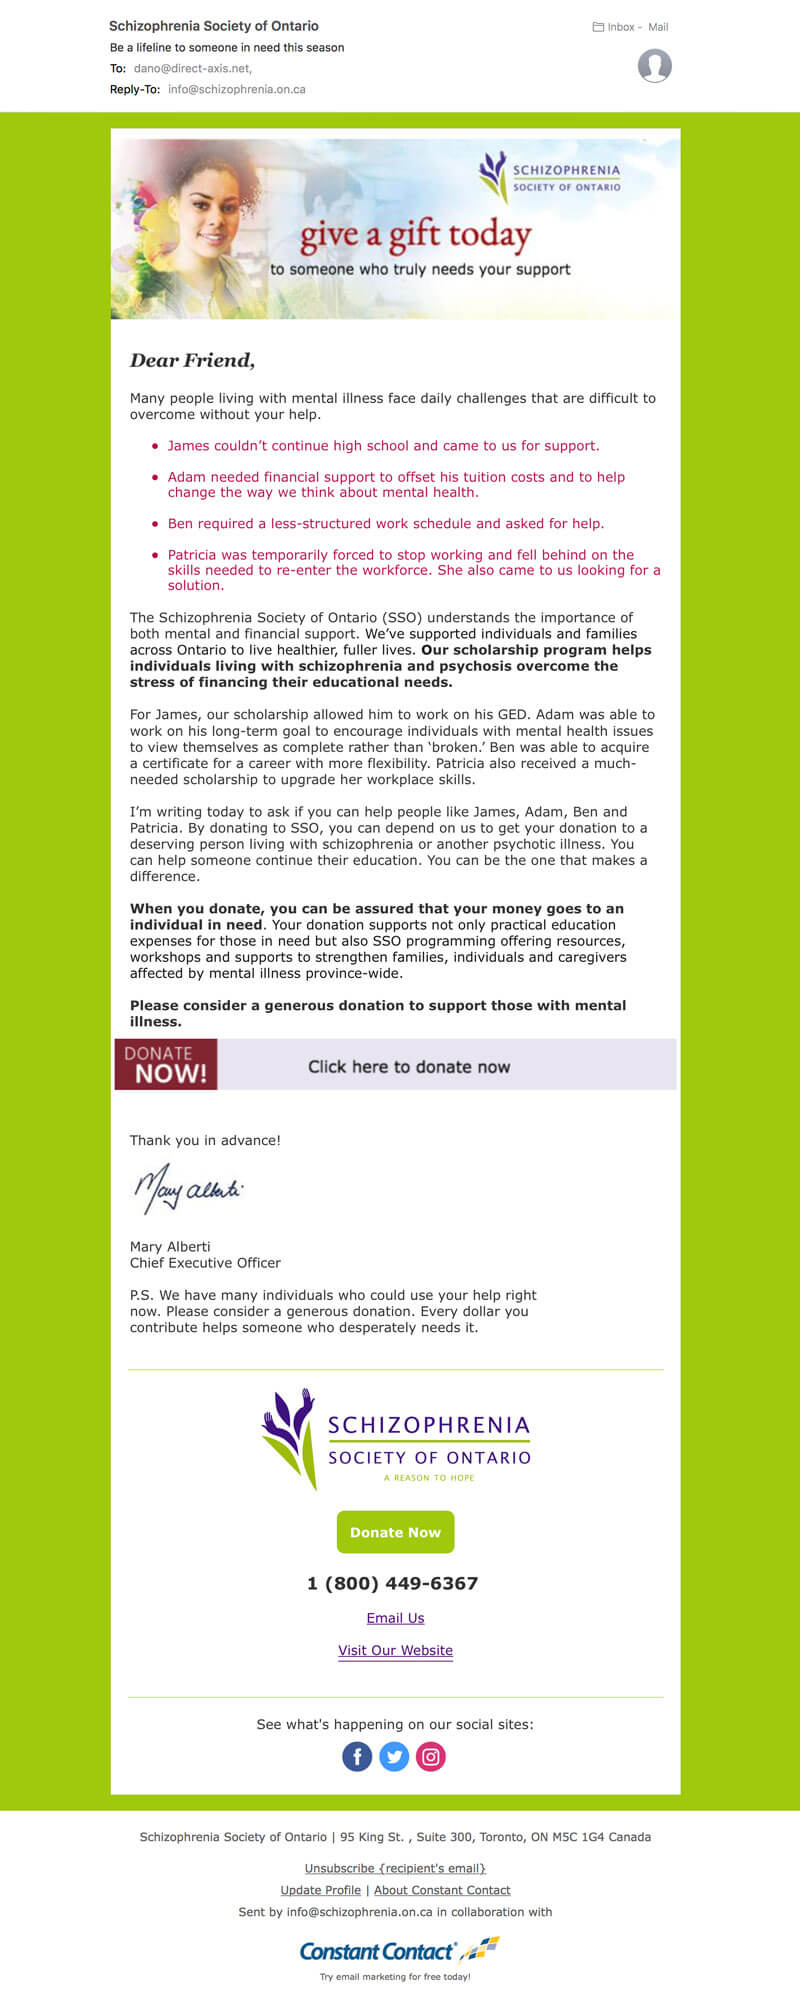 Email blast for matching direct mail campaign